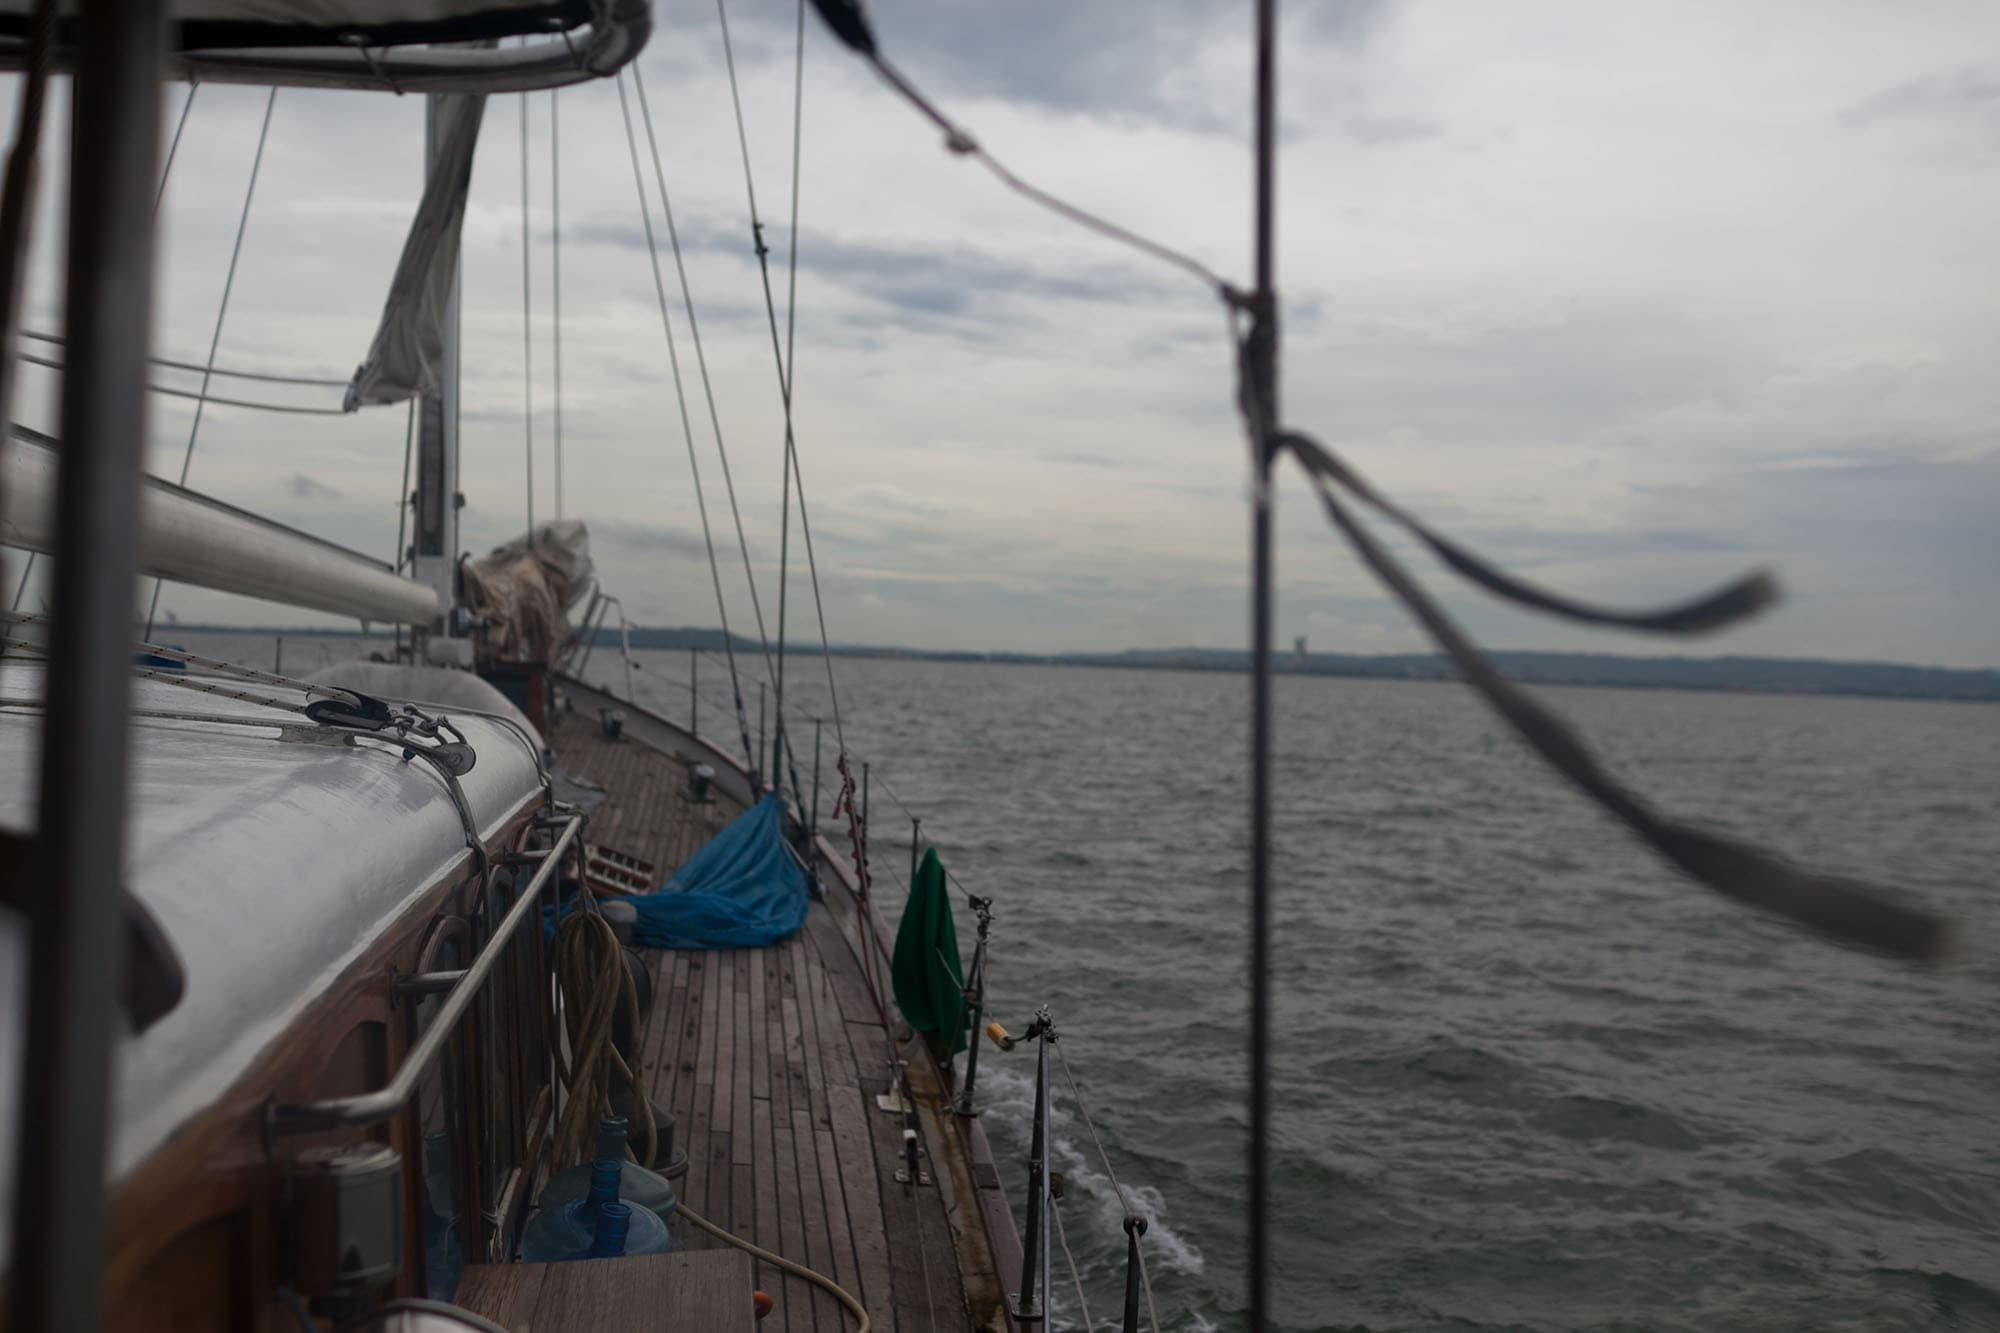 Sailing from Panama to Colombia.Sailing trip from Panama to Cartagena, Colombia on the Gitana III